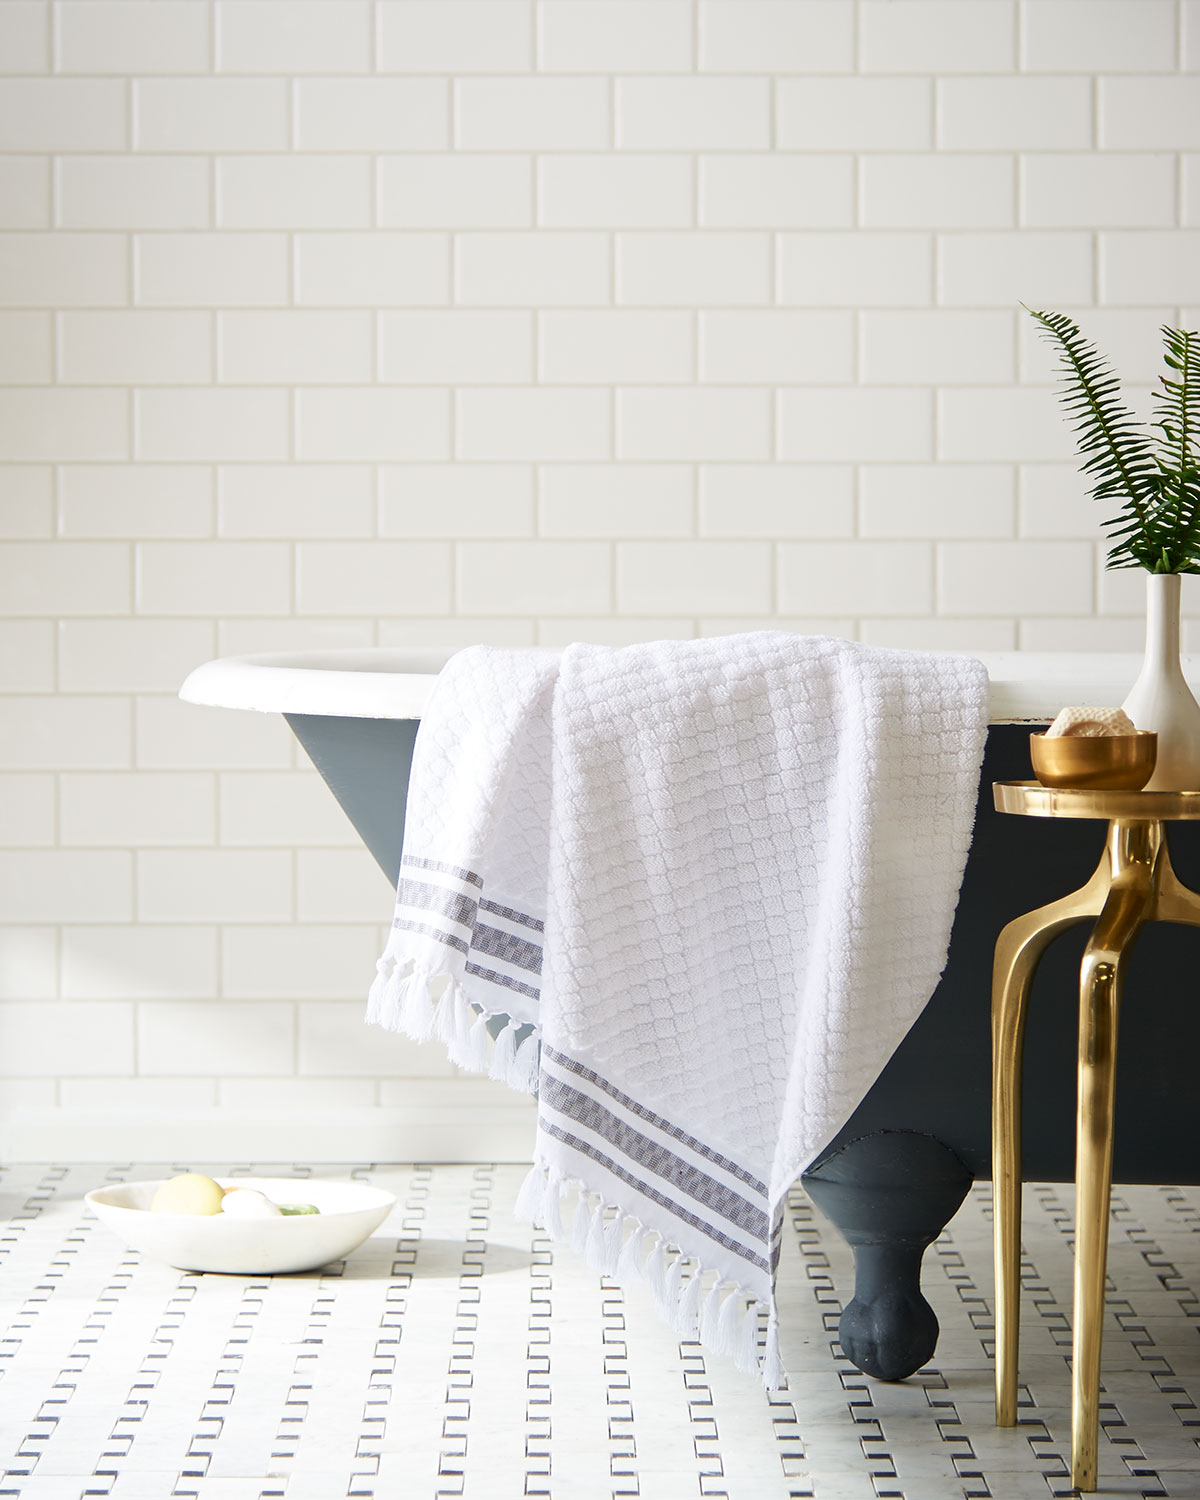 Luxury Bath D?cor: Towels, Accessories & More At Horchow